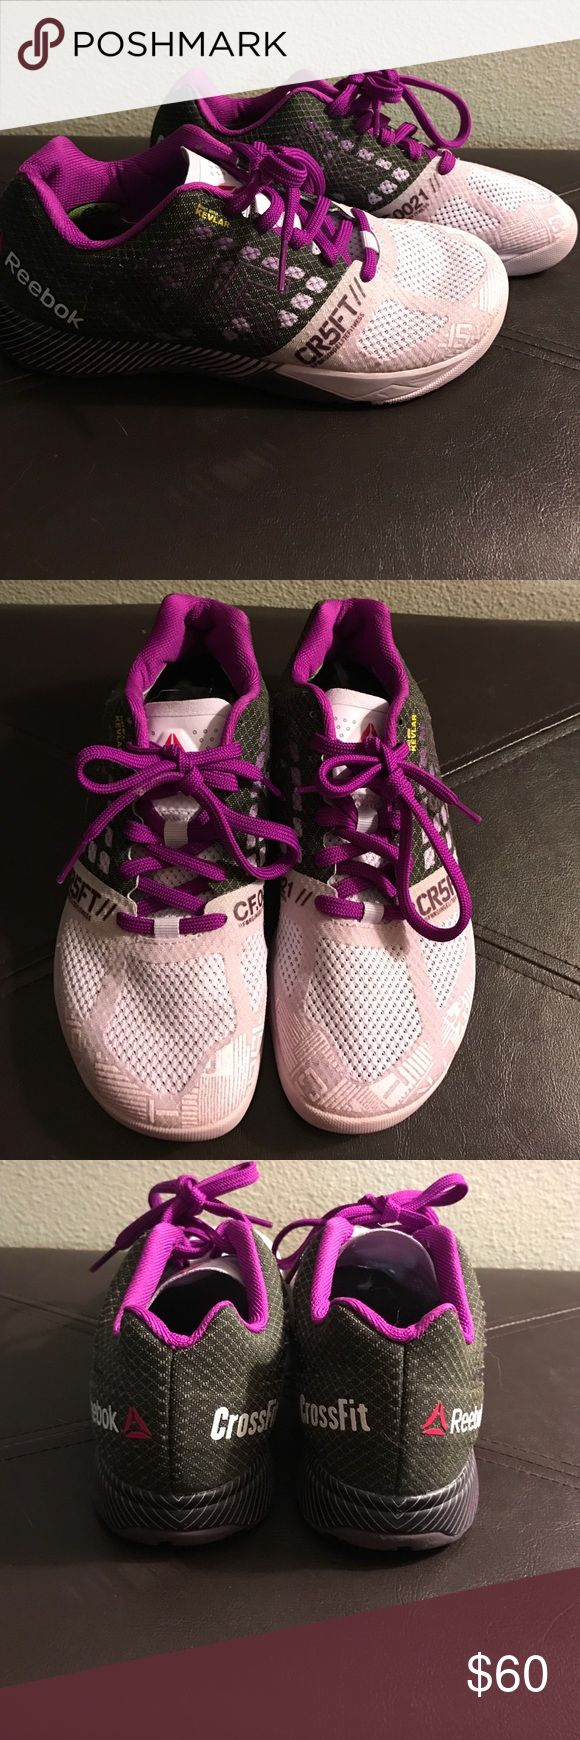 Reebok Crossfit Nano 5.0's size 6.5 Brand new- wore them once for a warm-up only - have Achilles tendinitis and had to switch to a different type of shoe for my workouts. These are the nano 5.0 version, great for crossfit & HIIT type workouts , strength training etc. Size 6.5. Reebok Shoes Sneakers